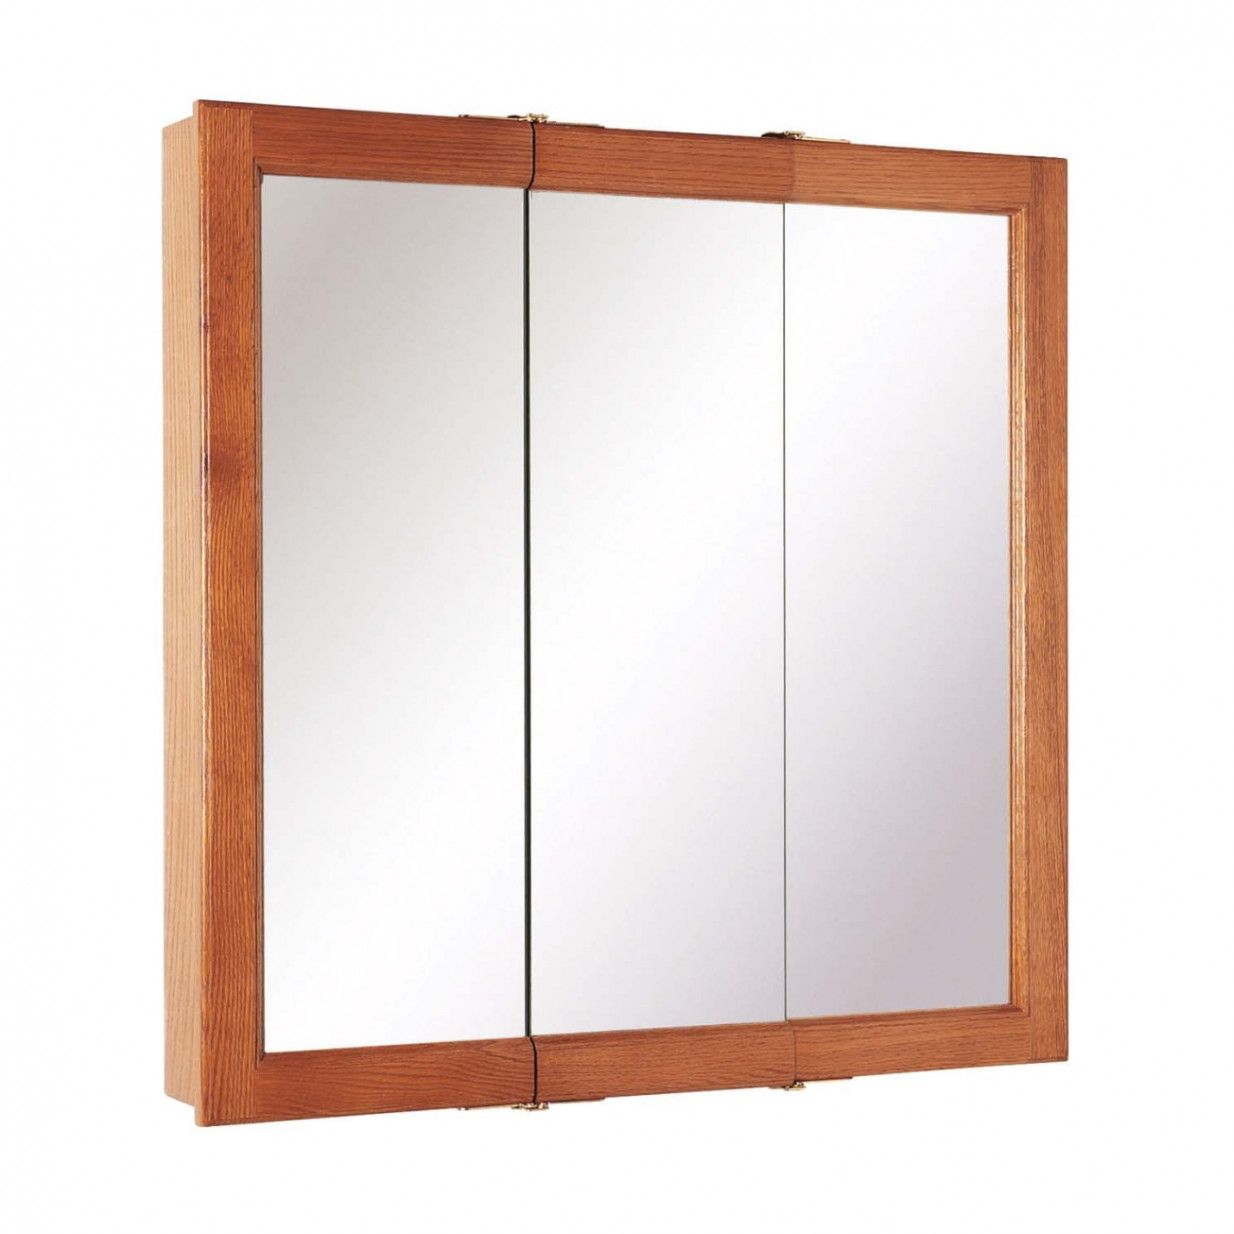 Mirrored Medicine Cabinet Lowes Delectable 55 Replacement Mirror For Bathroom Medicine Cabinet  Lowes Paint 2018